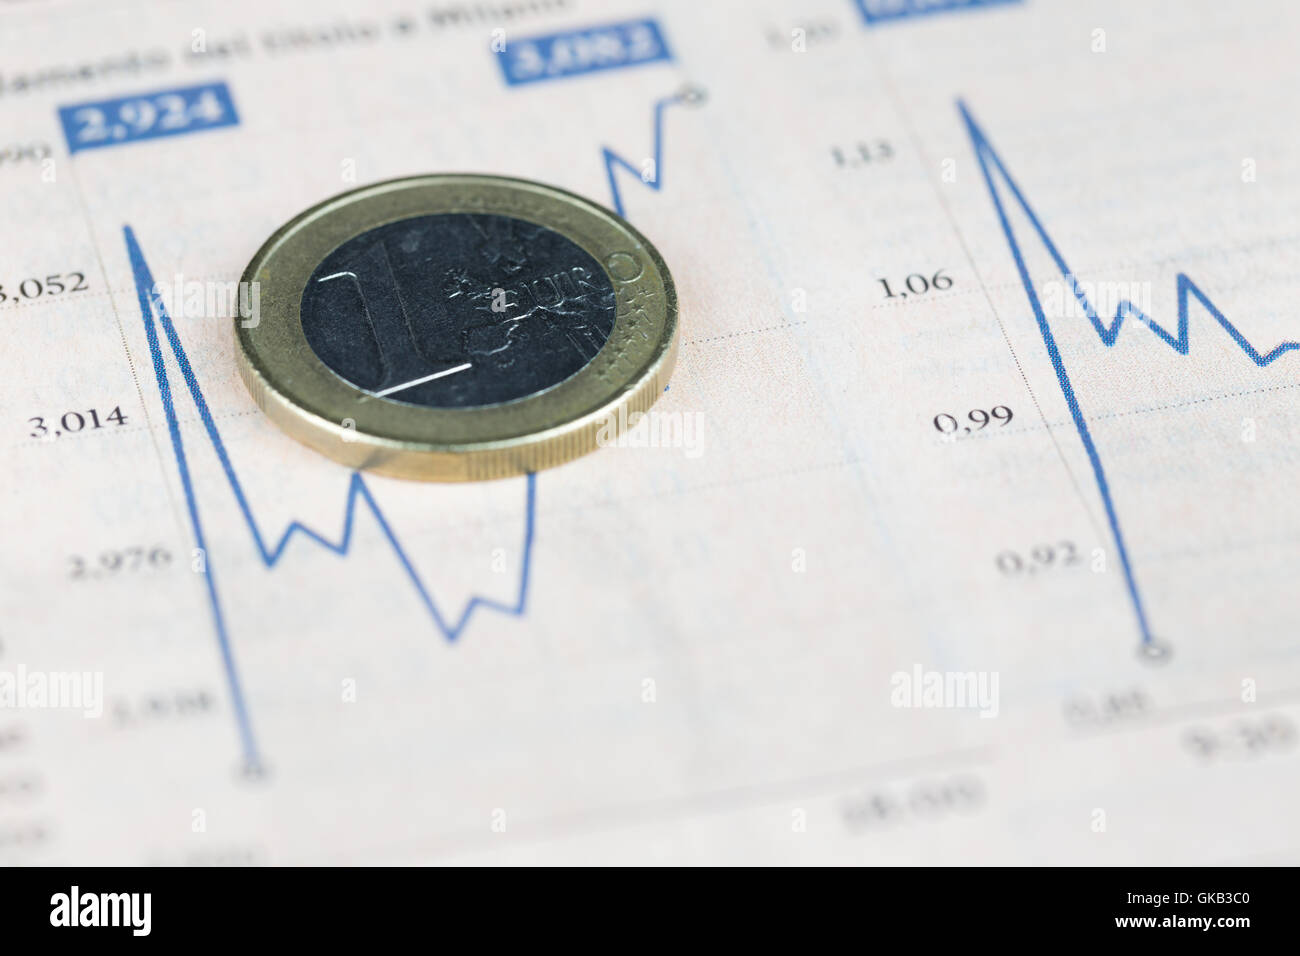 One euro coin over financial graph, economy concept - Stock Image